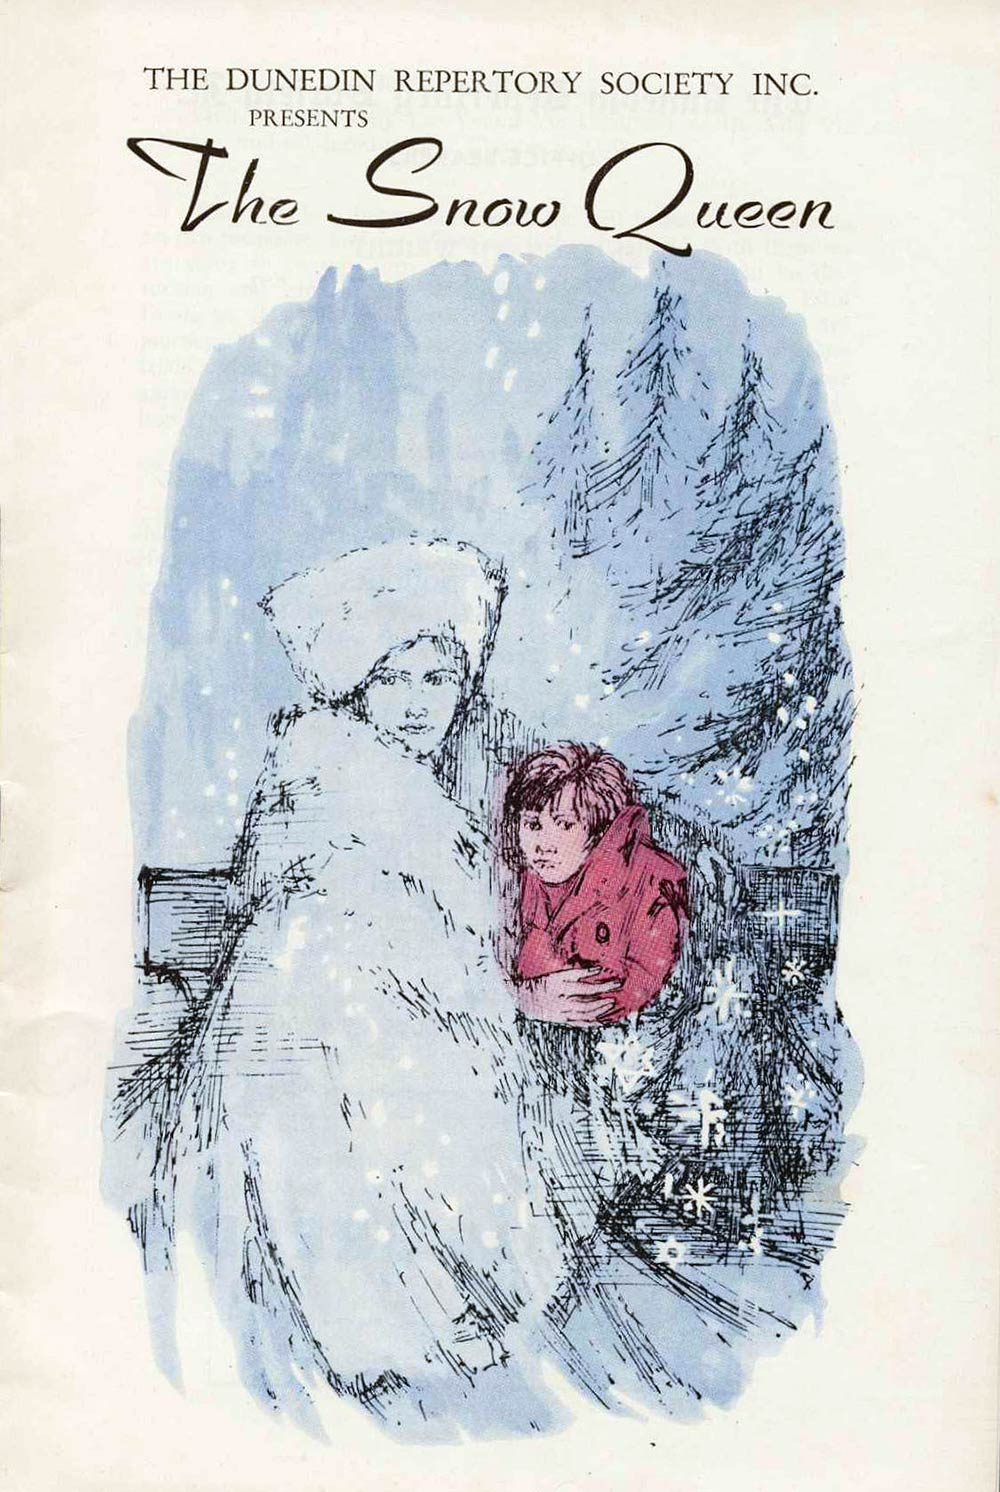 <em>The snow queen</em>. Suria Magito and Rudolf Weil; based on the story by Hans Christian Andersen. (Dunedin Repertory Society). [ca. 1962]